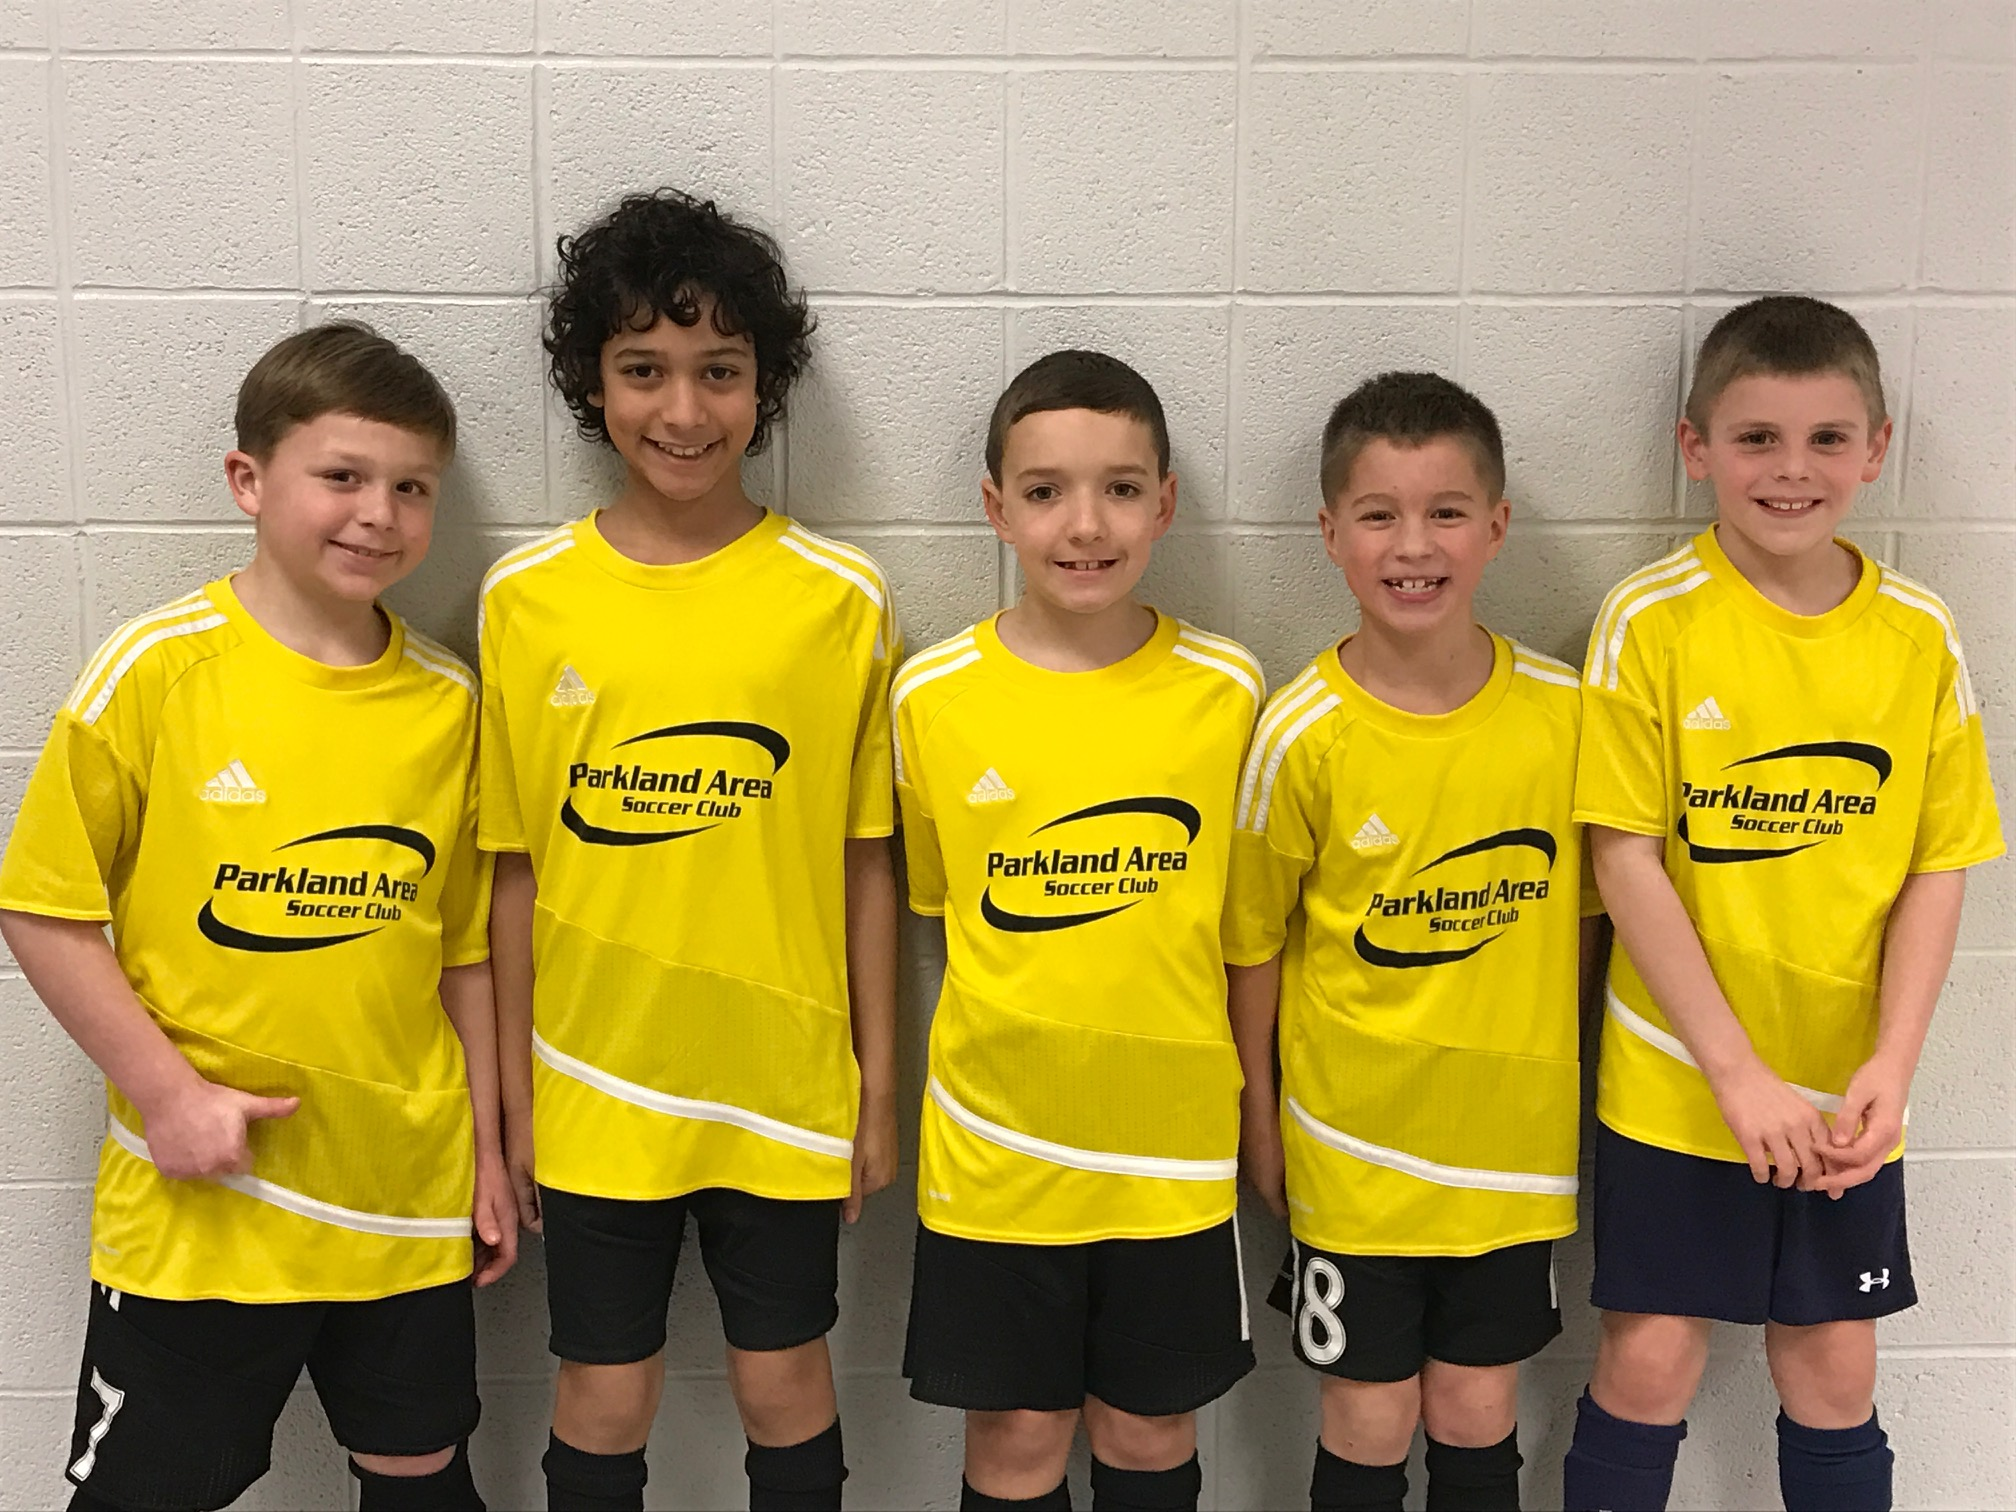 U9 Boys Trojans, winners of their Division at the PHS Indoor 3v3 tournament